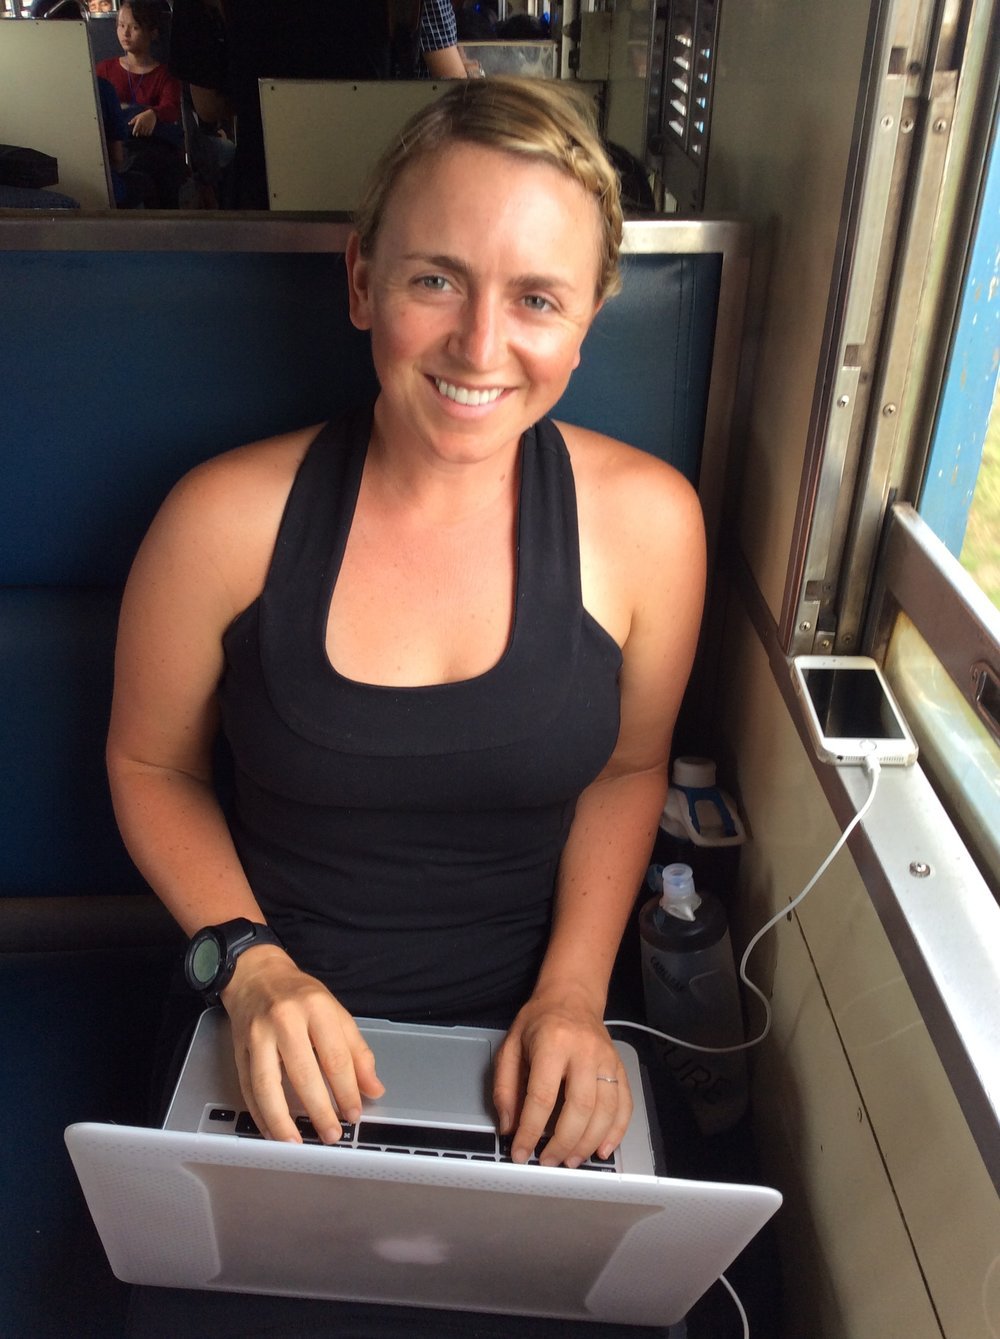 Work when you can. This was on a hot and sweaty train ride between the Cambodian border and Bangkok, Thailand.